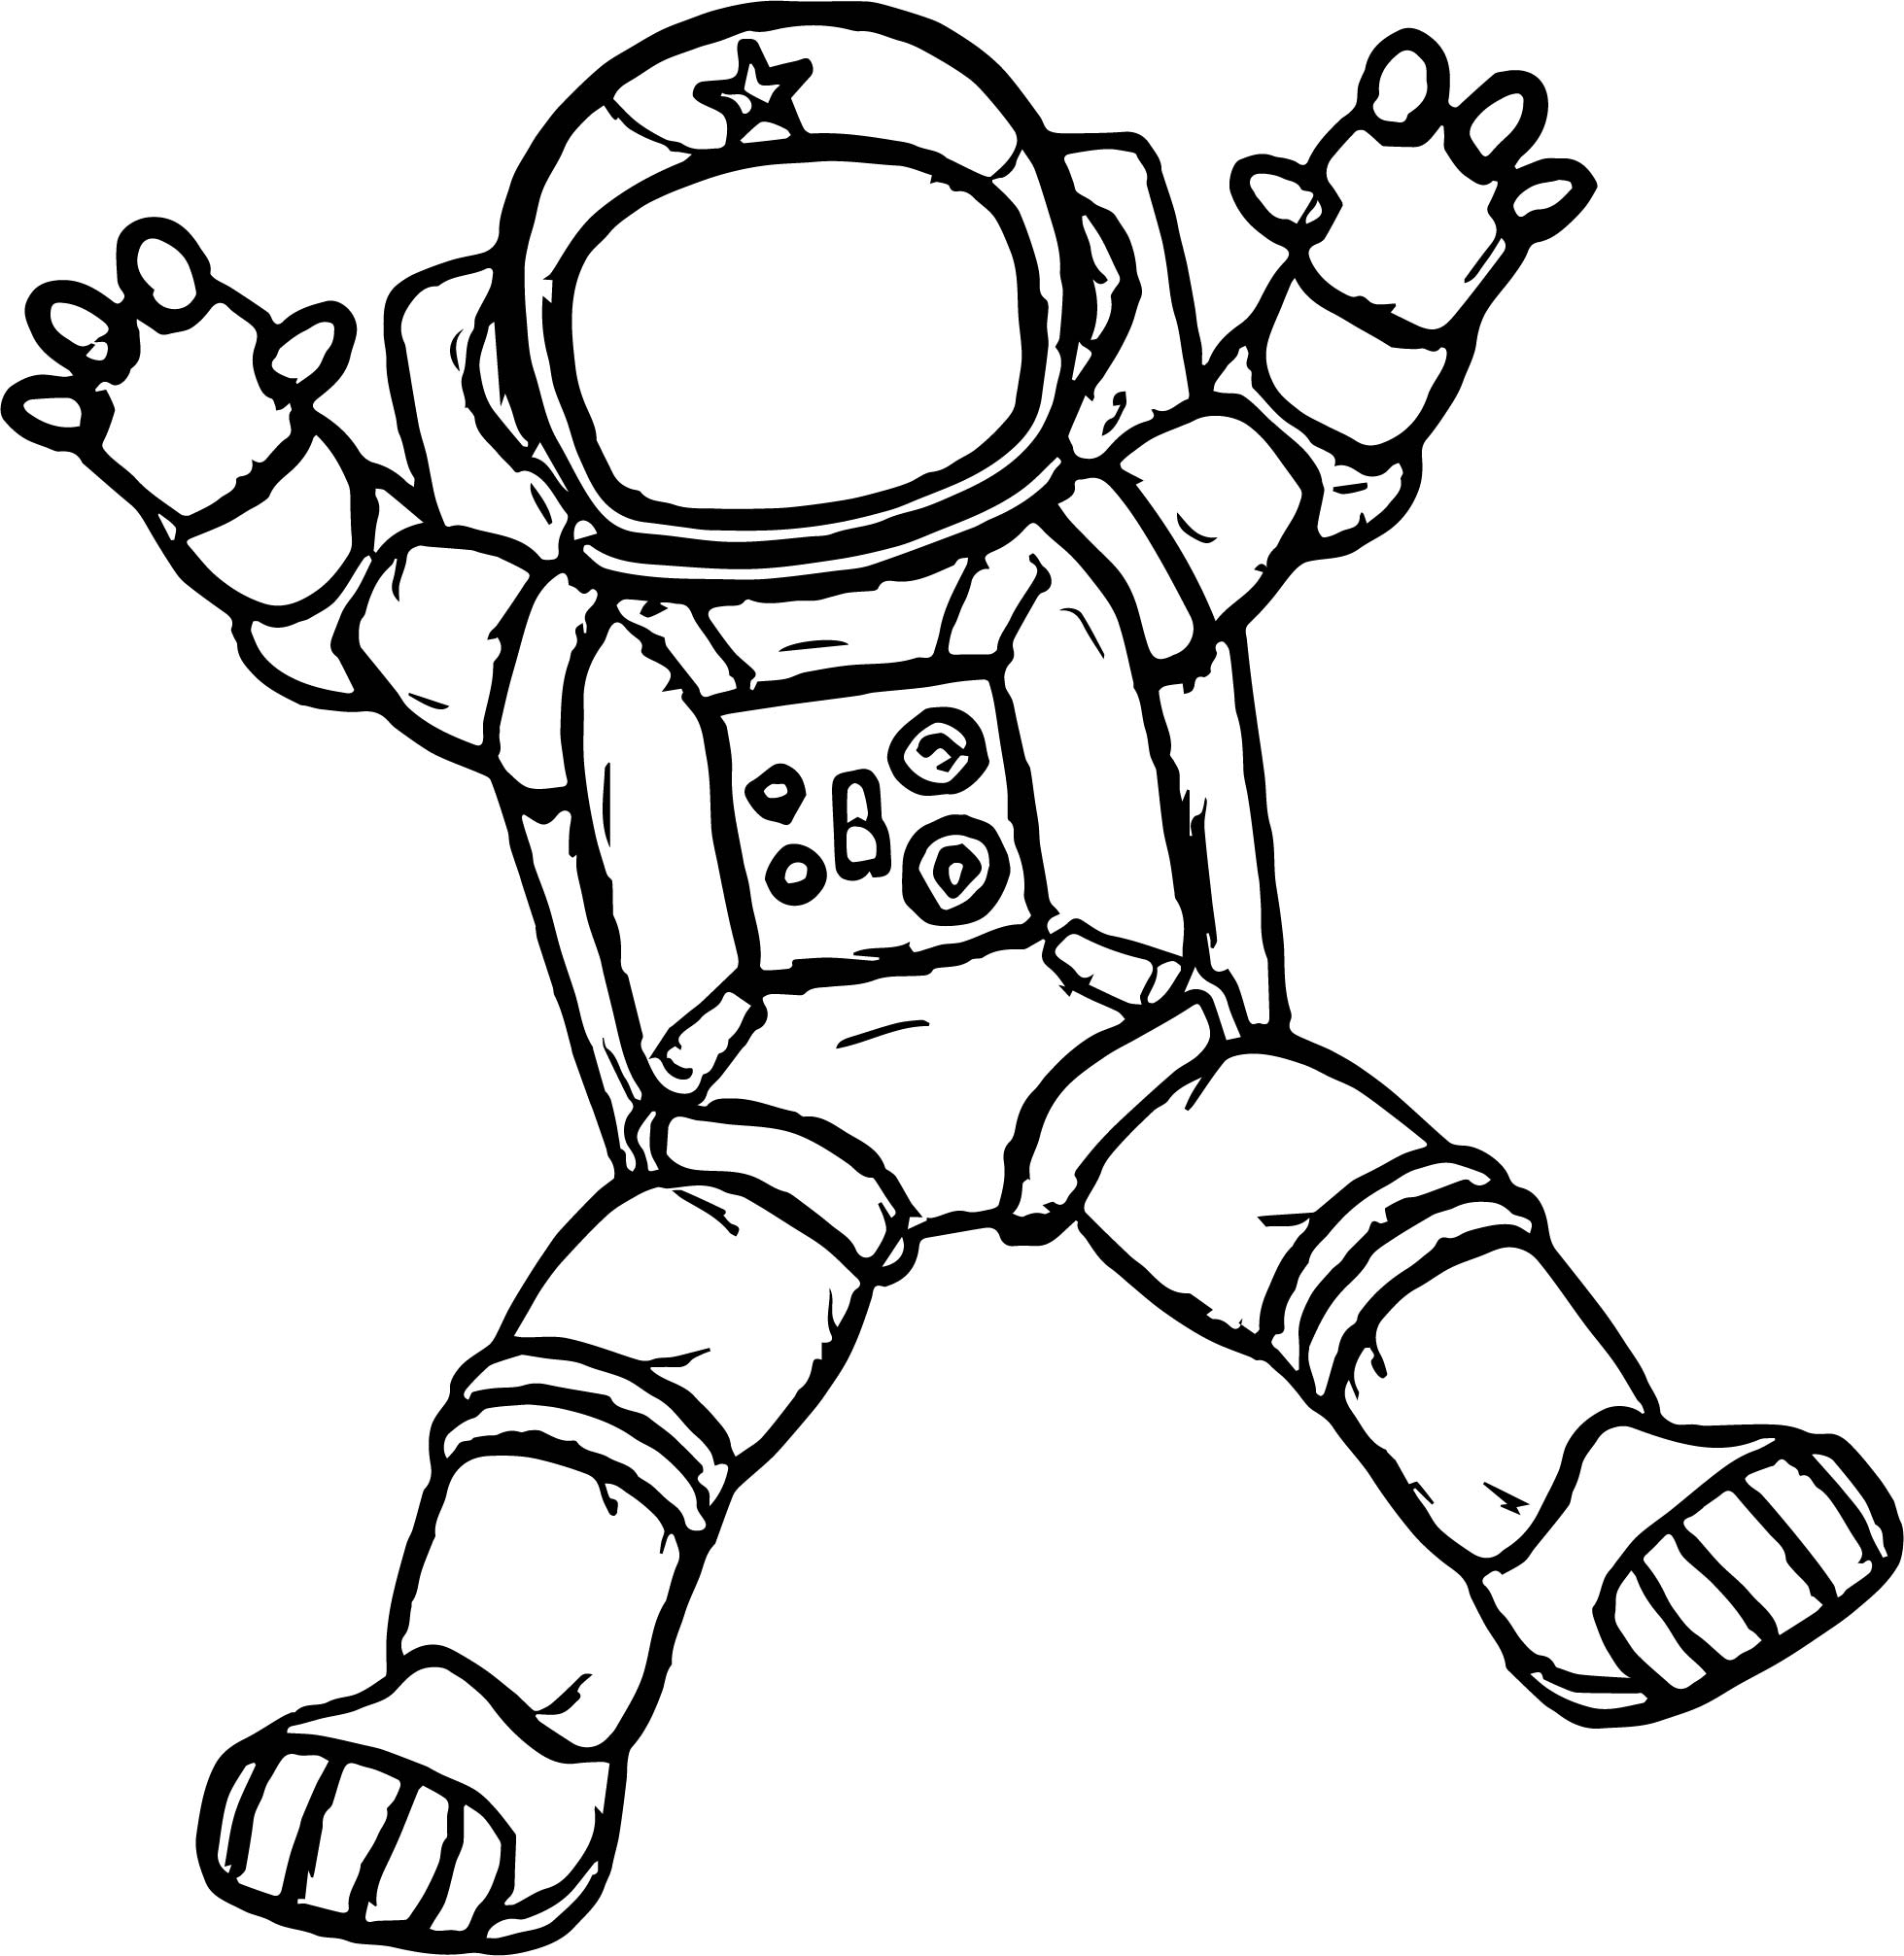 astronaut for coloring astronaut coloring pages for adults learning how to read for coloring astronaut